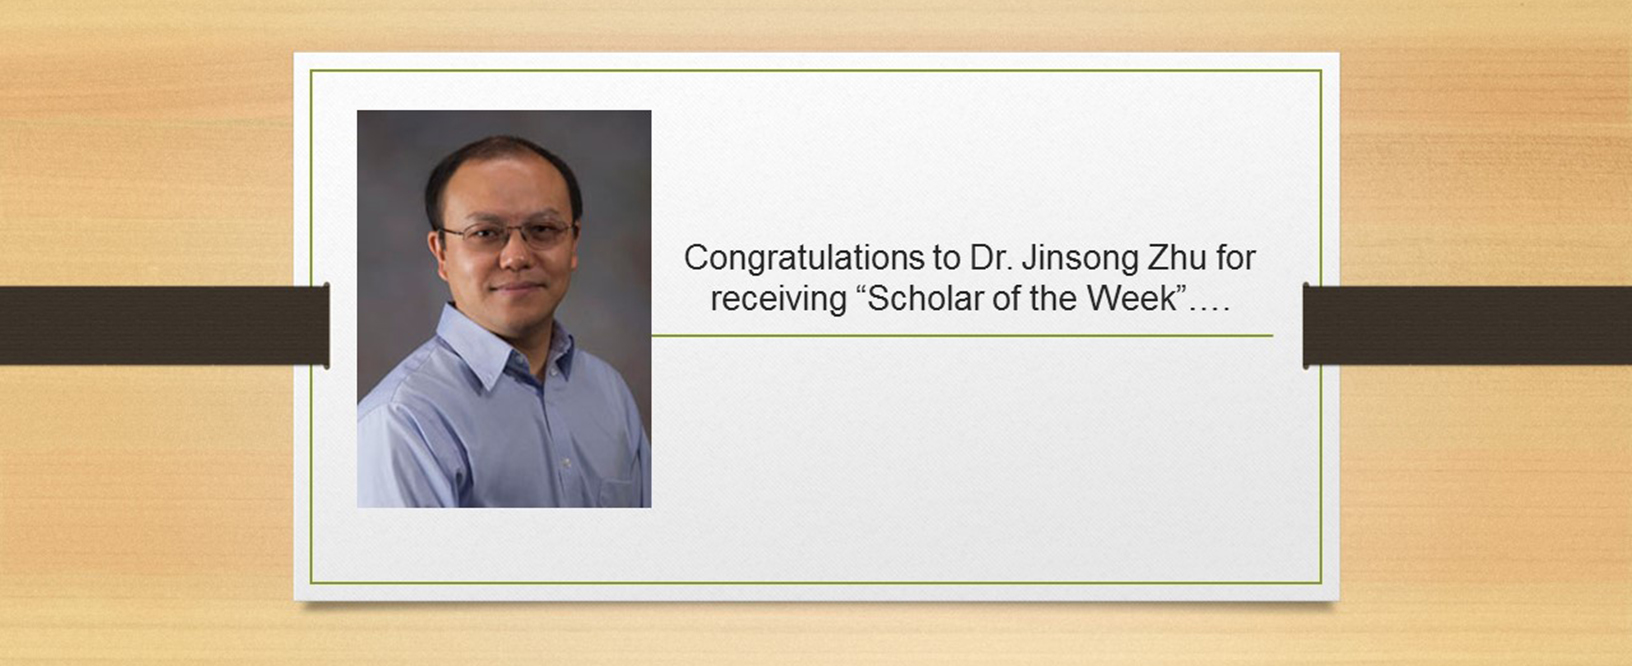 "Congratulations to Dr. Jinsong Zhu for receiving ""Scholar of the Week""…."